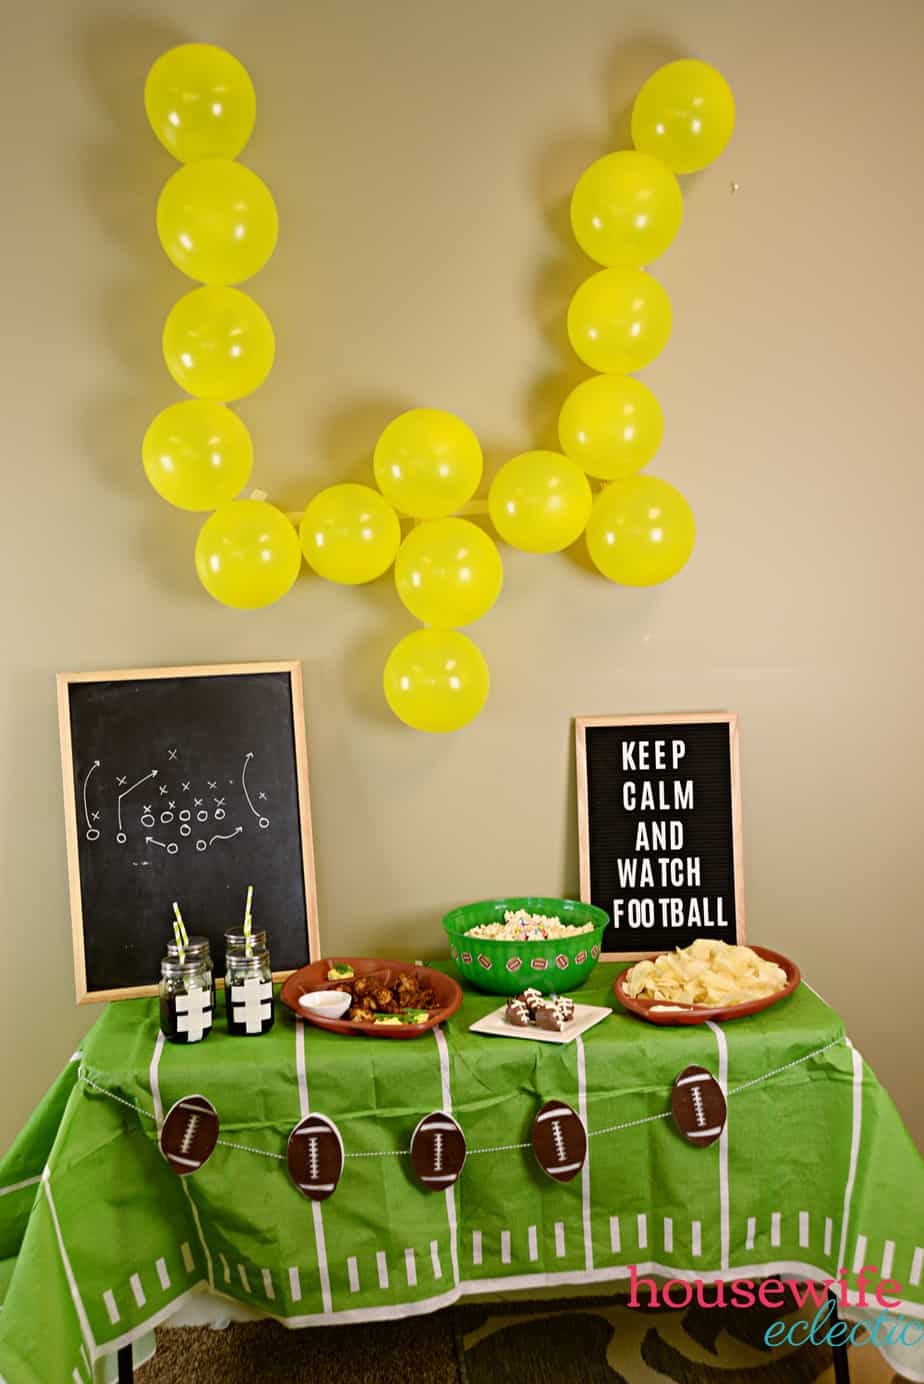 Football Party Ideas: Balloon Uprights